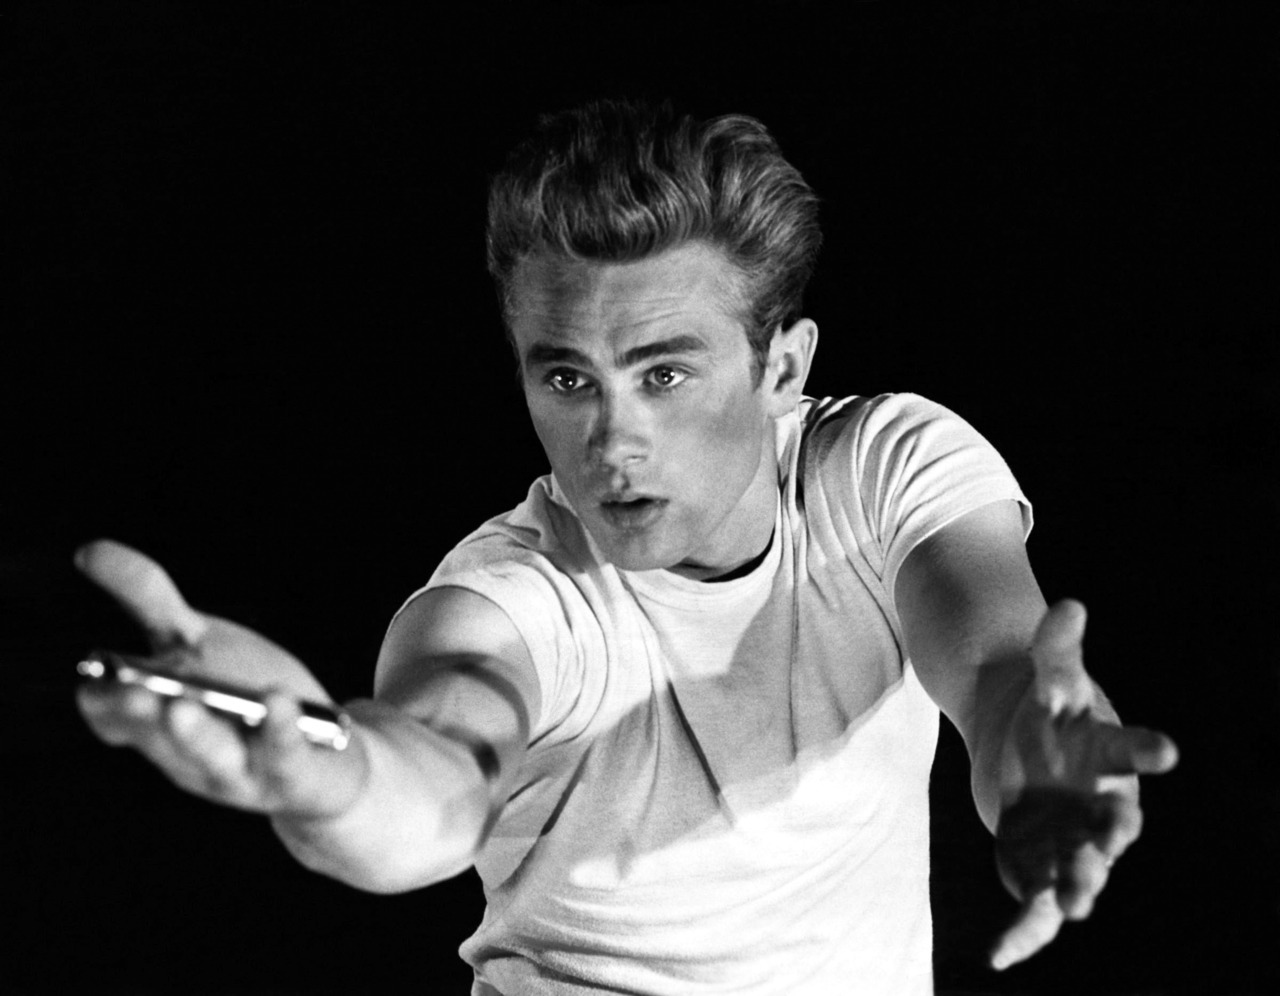 """You're tearing me apart!"" -James Dean as Jim Stark in Rebel Without a Cause Black and white movie still of the day"